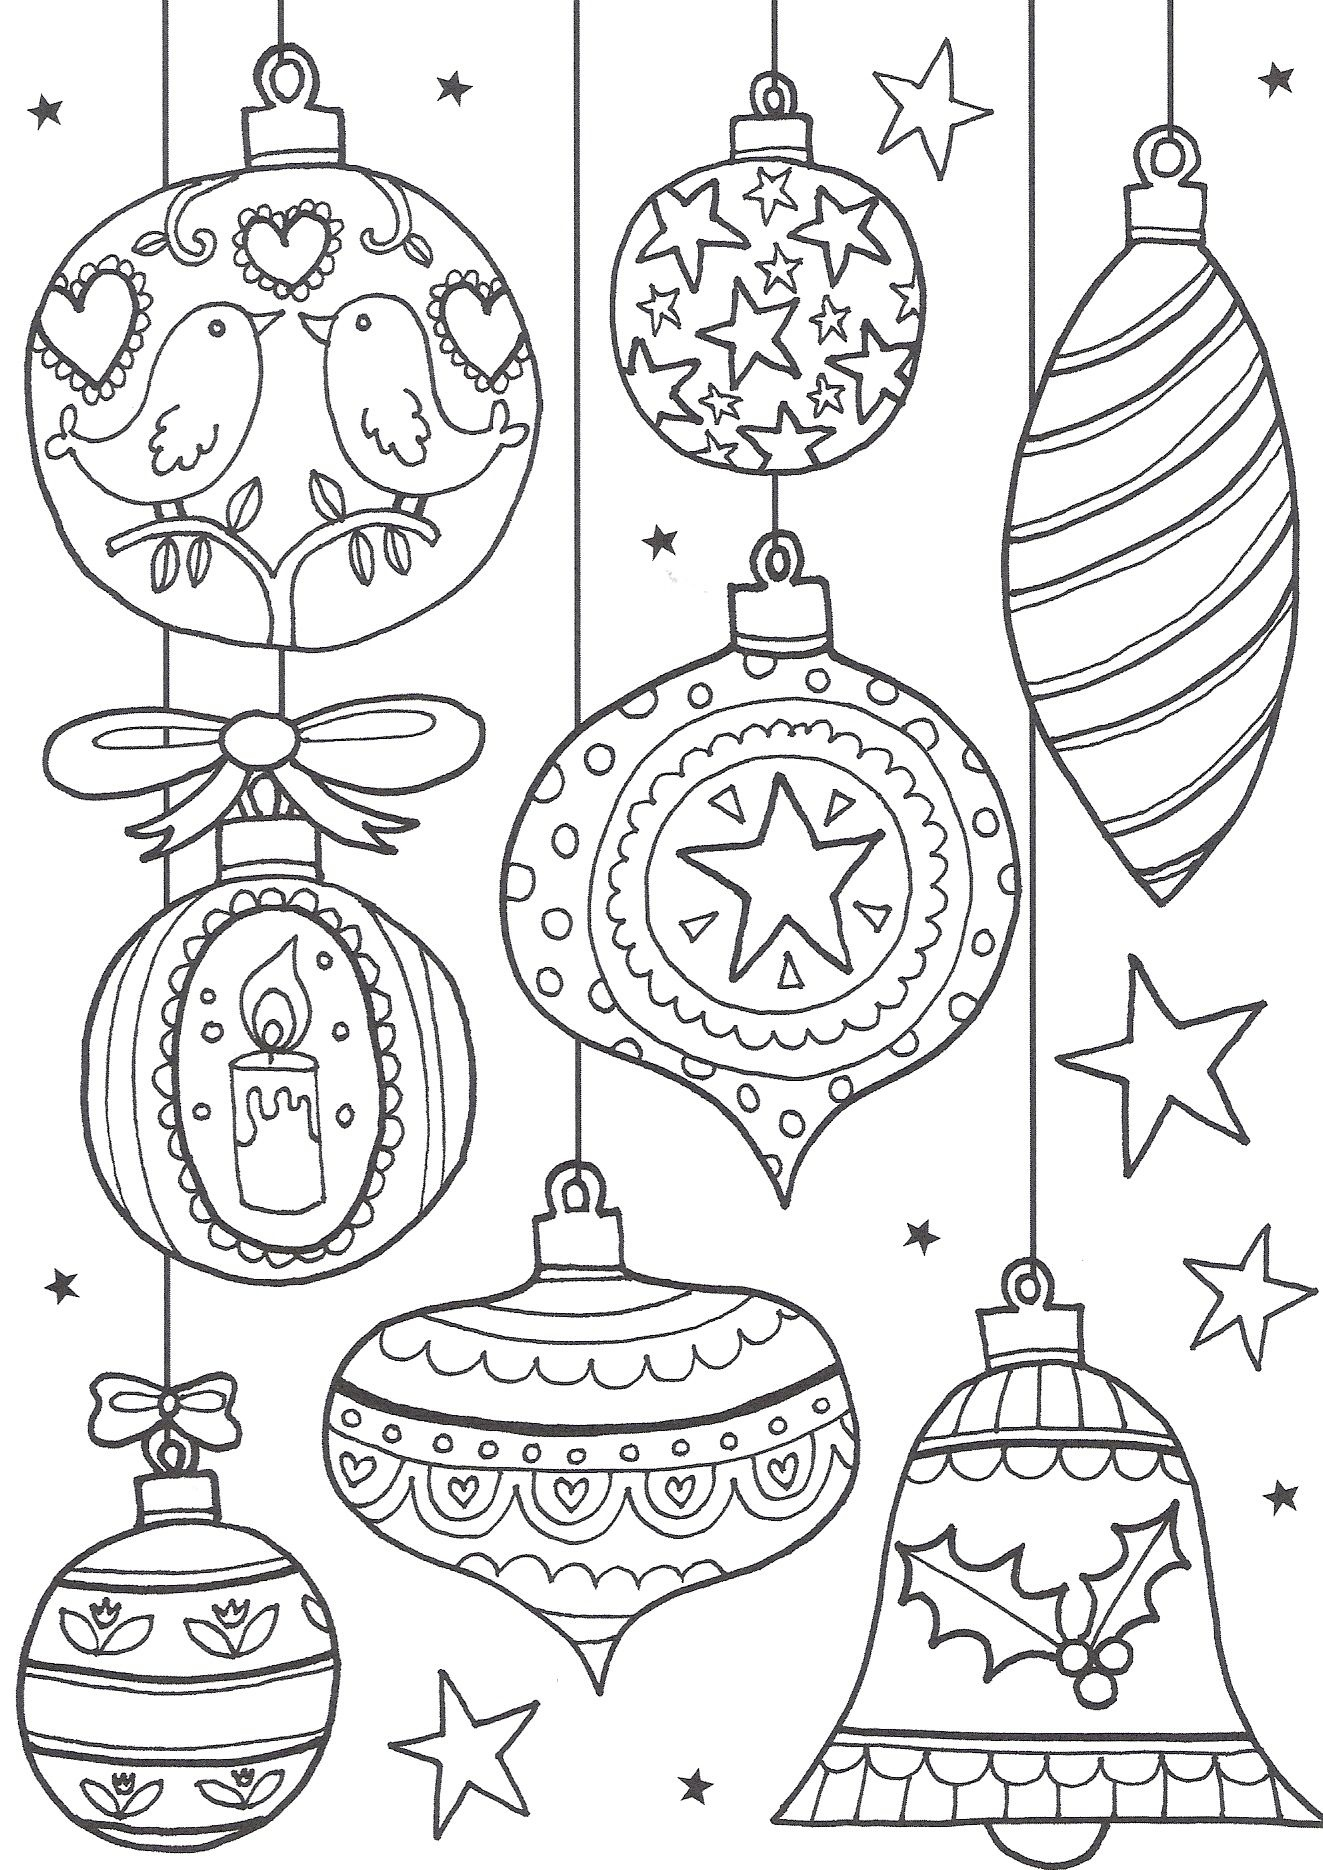 Free Christmas Colouring Pages For Adults – The Ultimate Roundup - Xmas Coloring Pages Free Printable